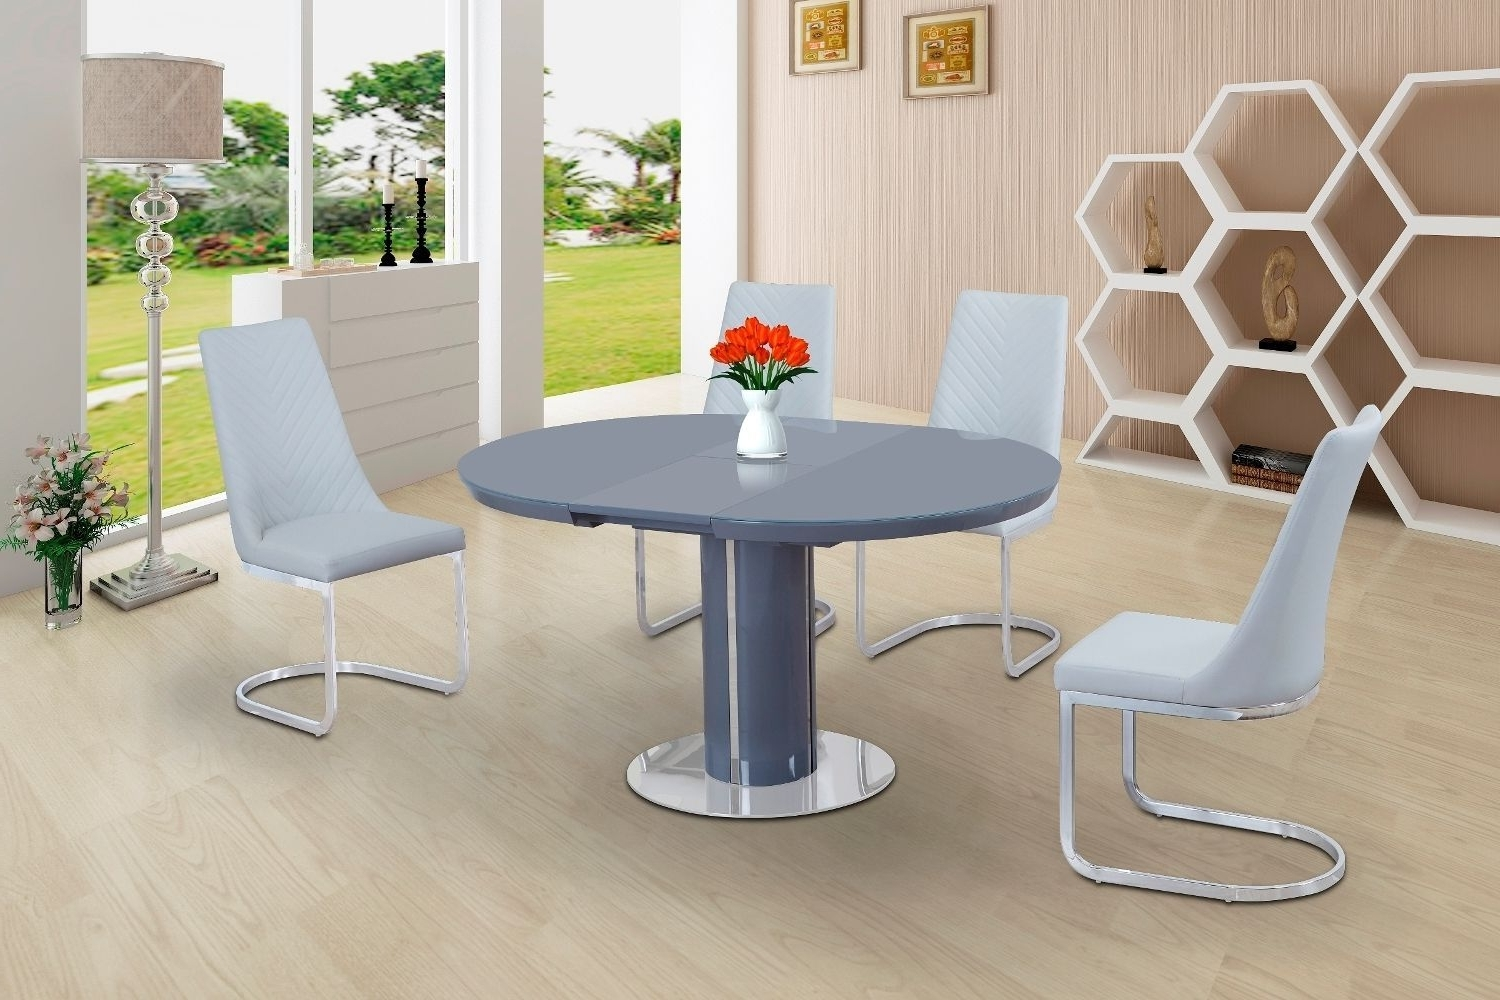 Eclipse Round Oval Gloss & Glass Extending 110 To 145 Cm Dining In Popular Gloss Dining Set (View 22 of 25)